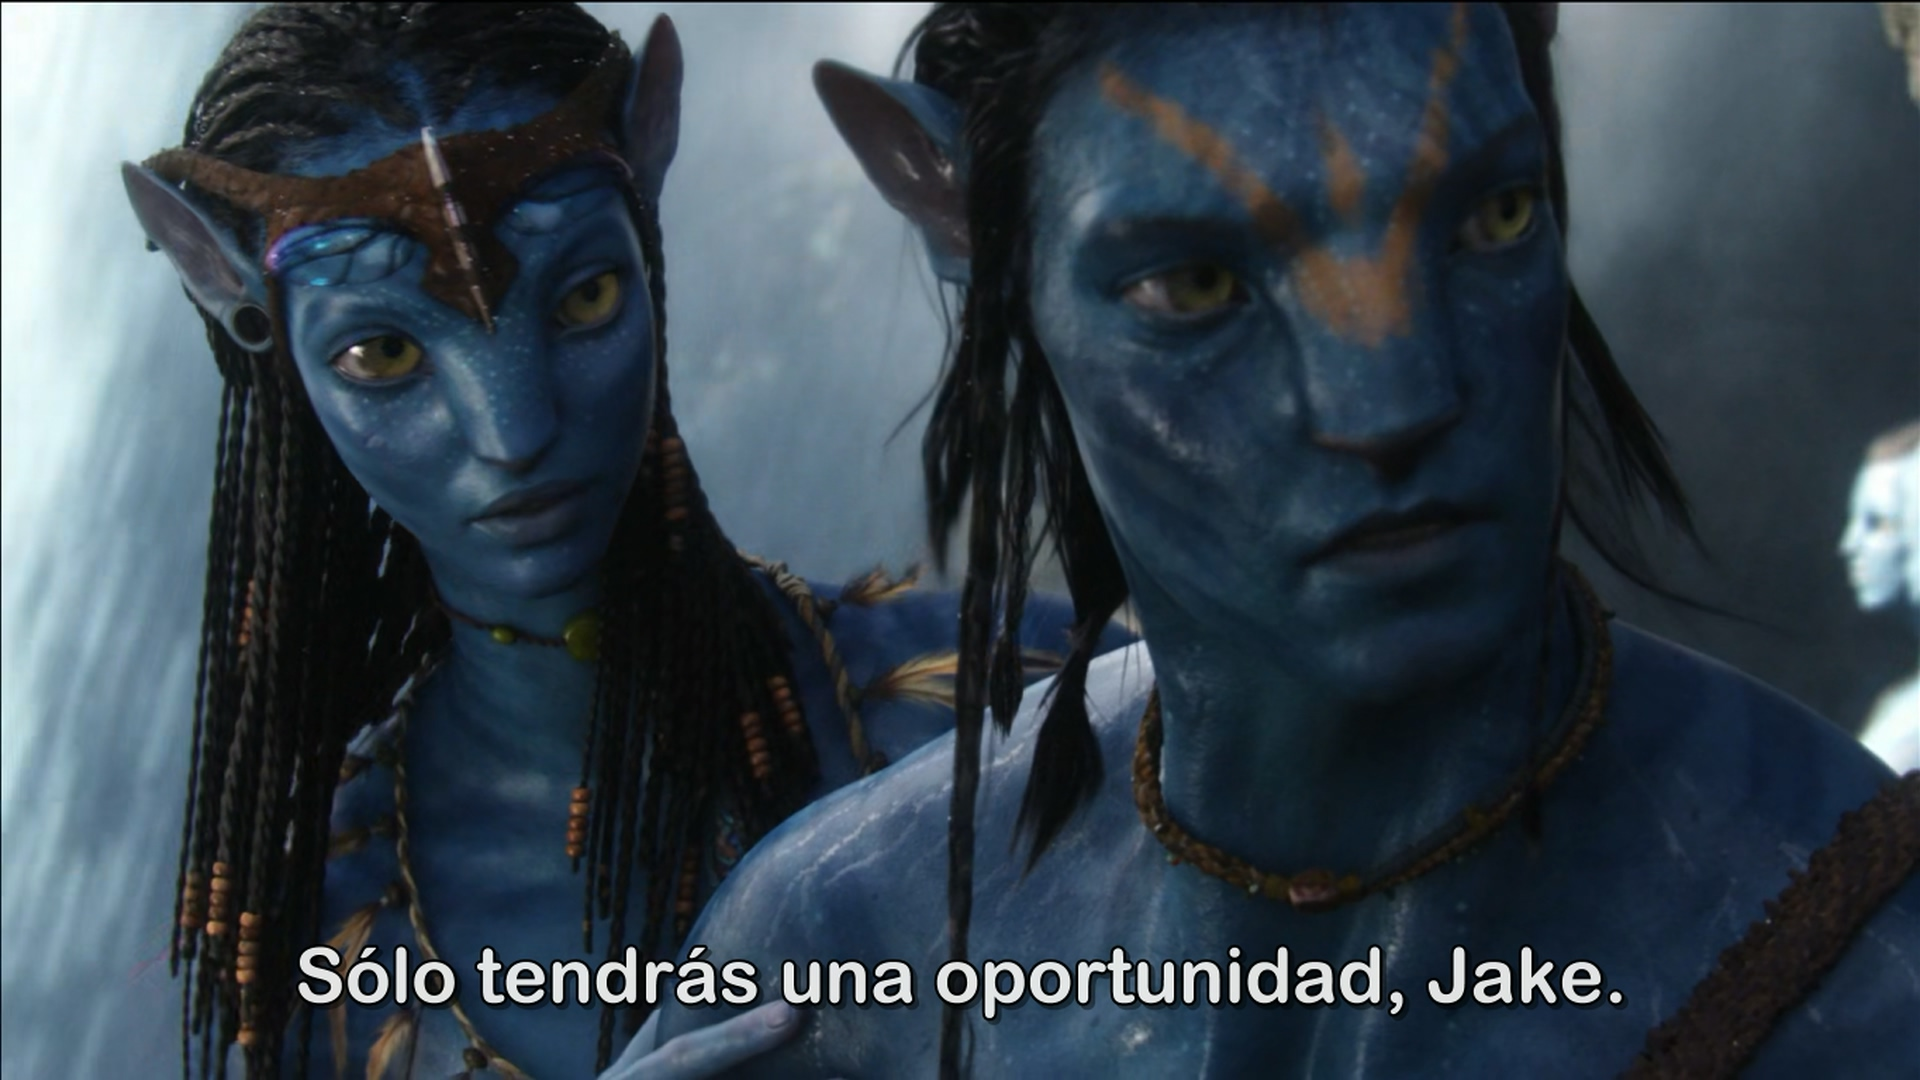 Avatar (2009) Extended Collector's Edition x265 10Bits 1080p